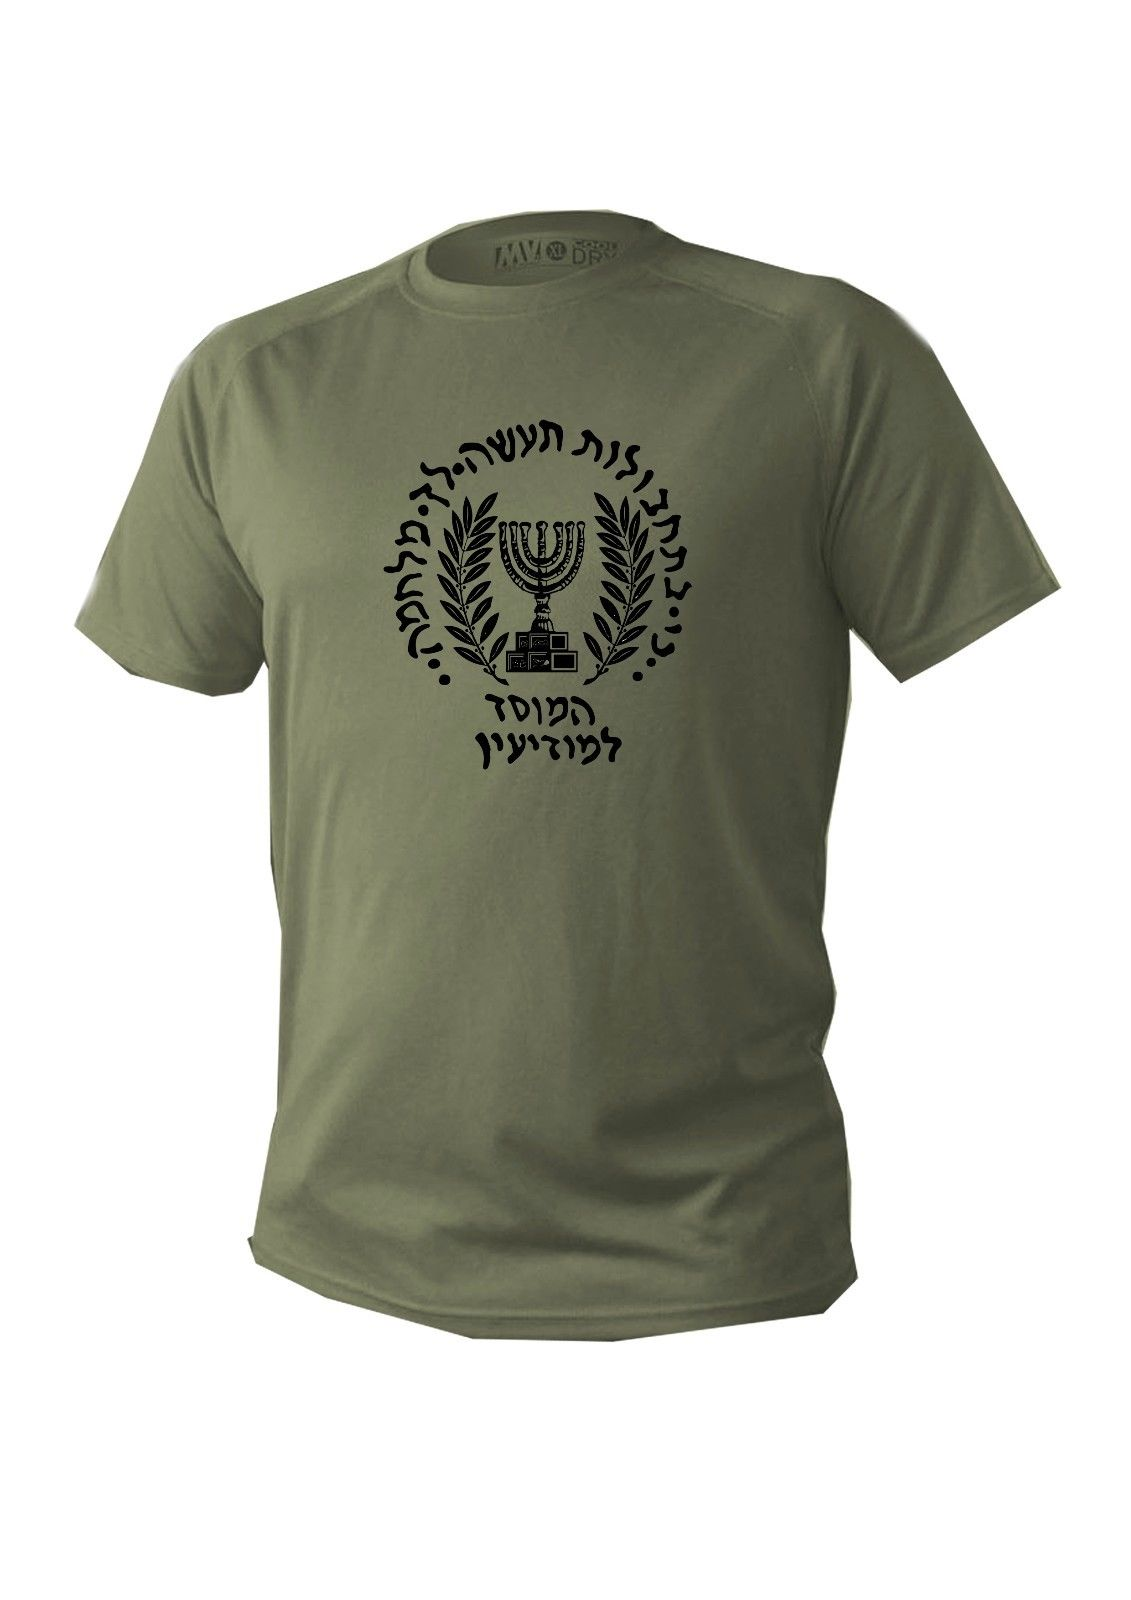 2018 New Summer Casual Men T-shirt T shirt Mens dry fit short sleeve green olive israel mossad Special Operations